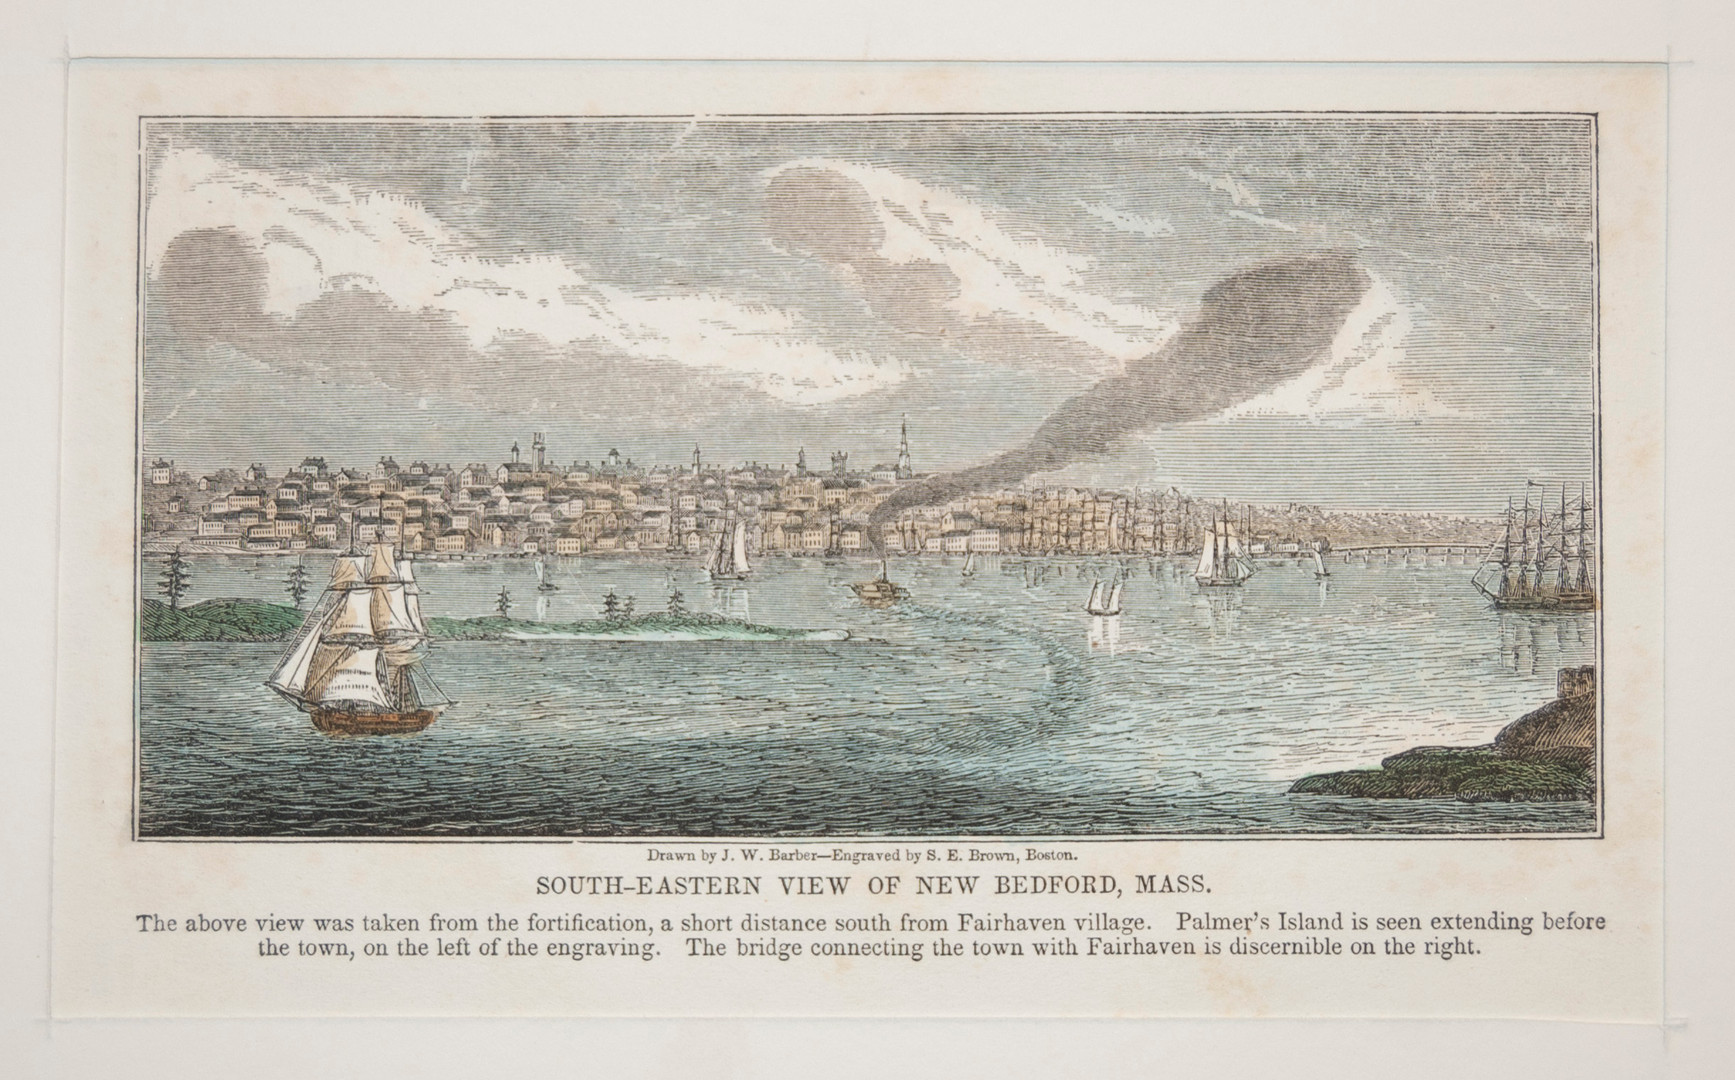 South-Eastern View of New Bedford, MA